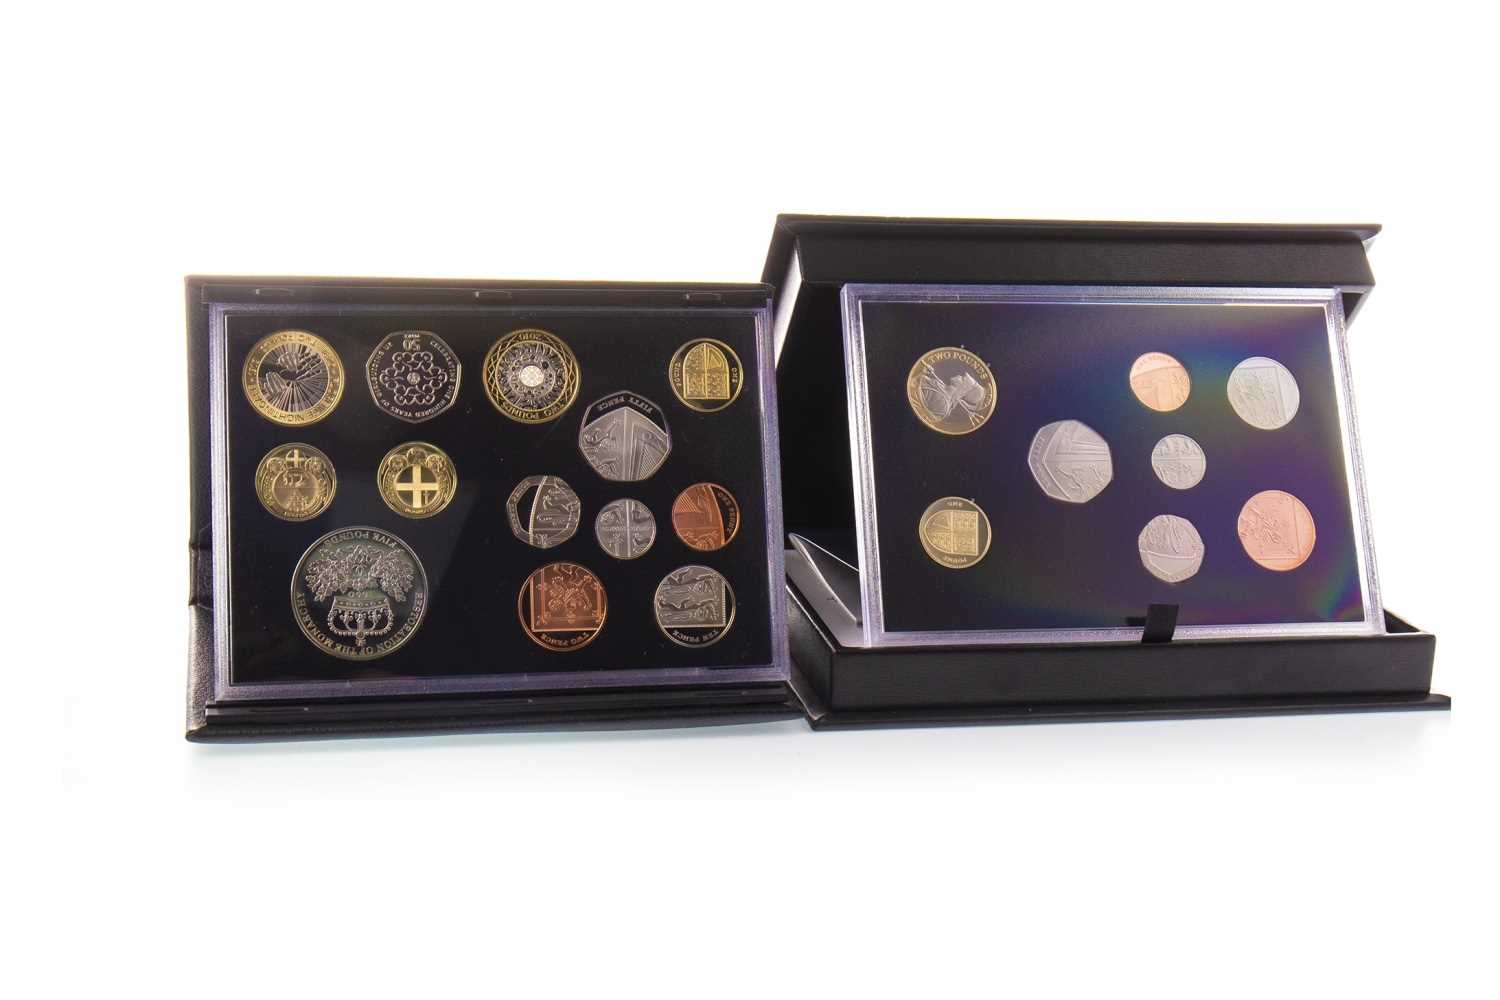 Lot 584 - TWO COIN SETS